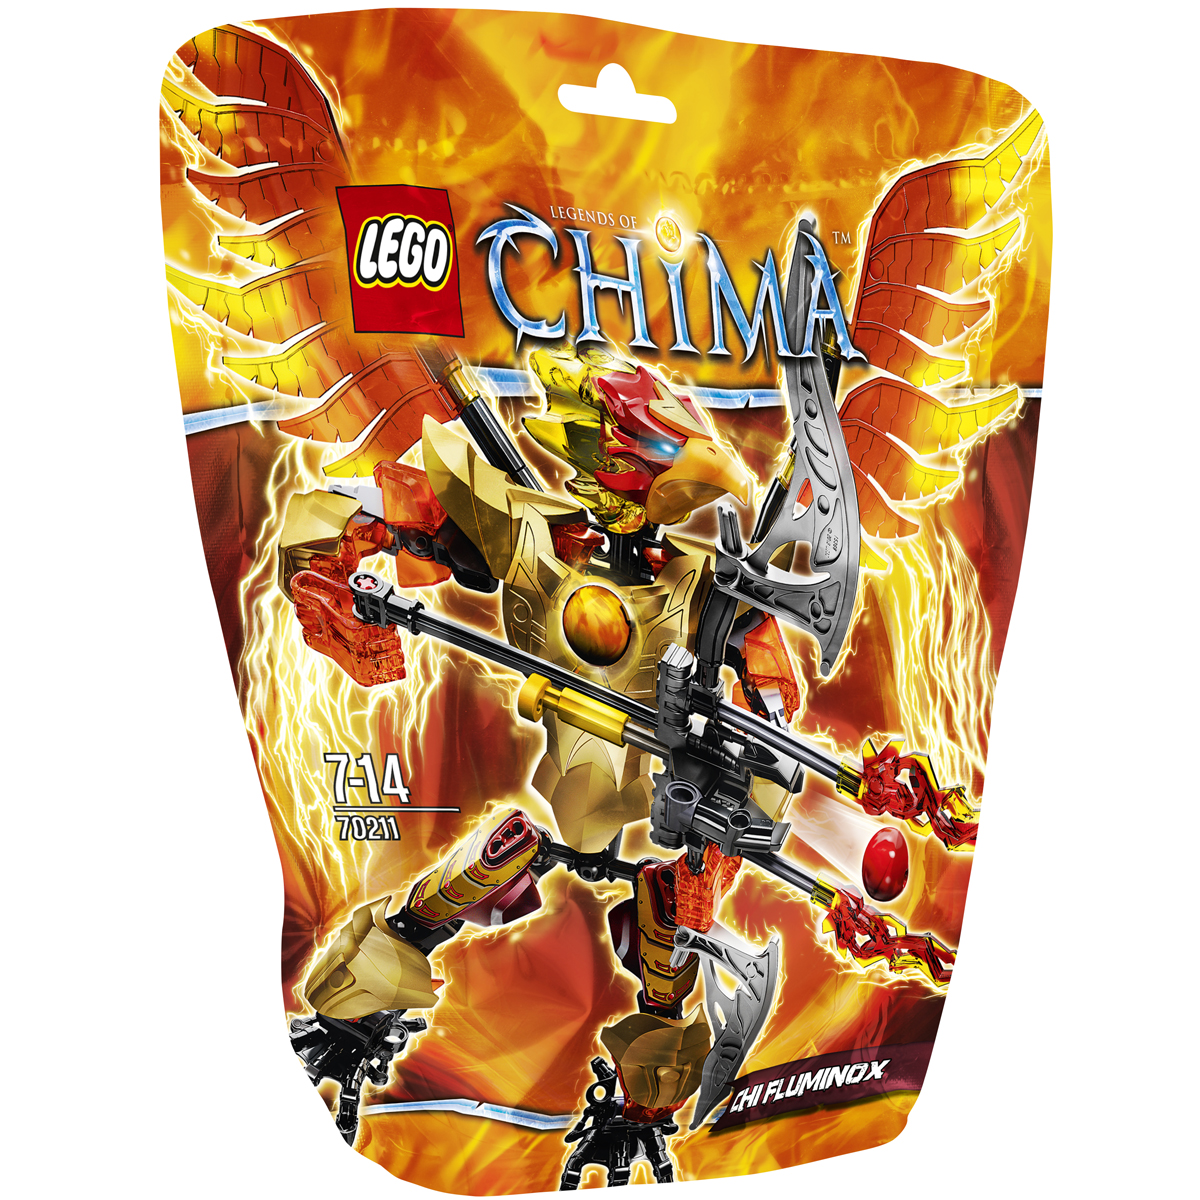 Do choi LEGO 70211 - Chien Binh Lua Fluminox